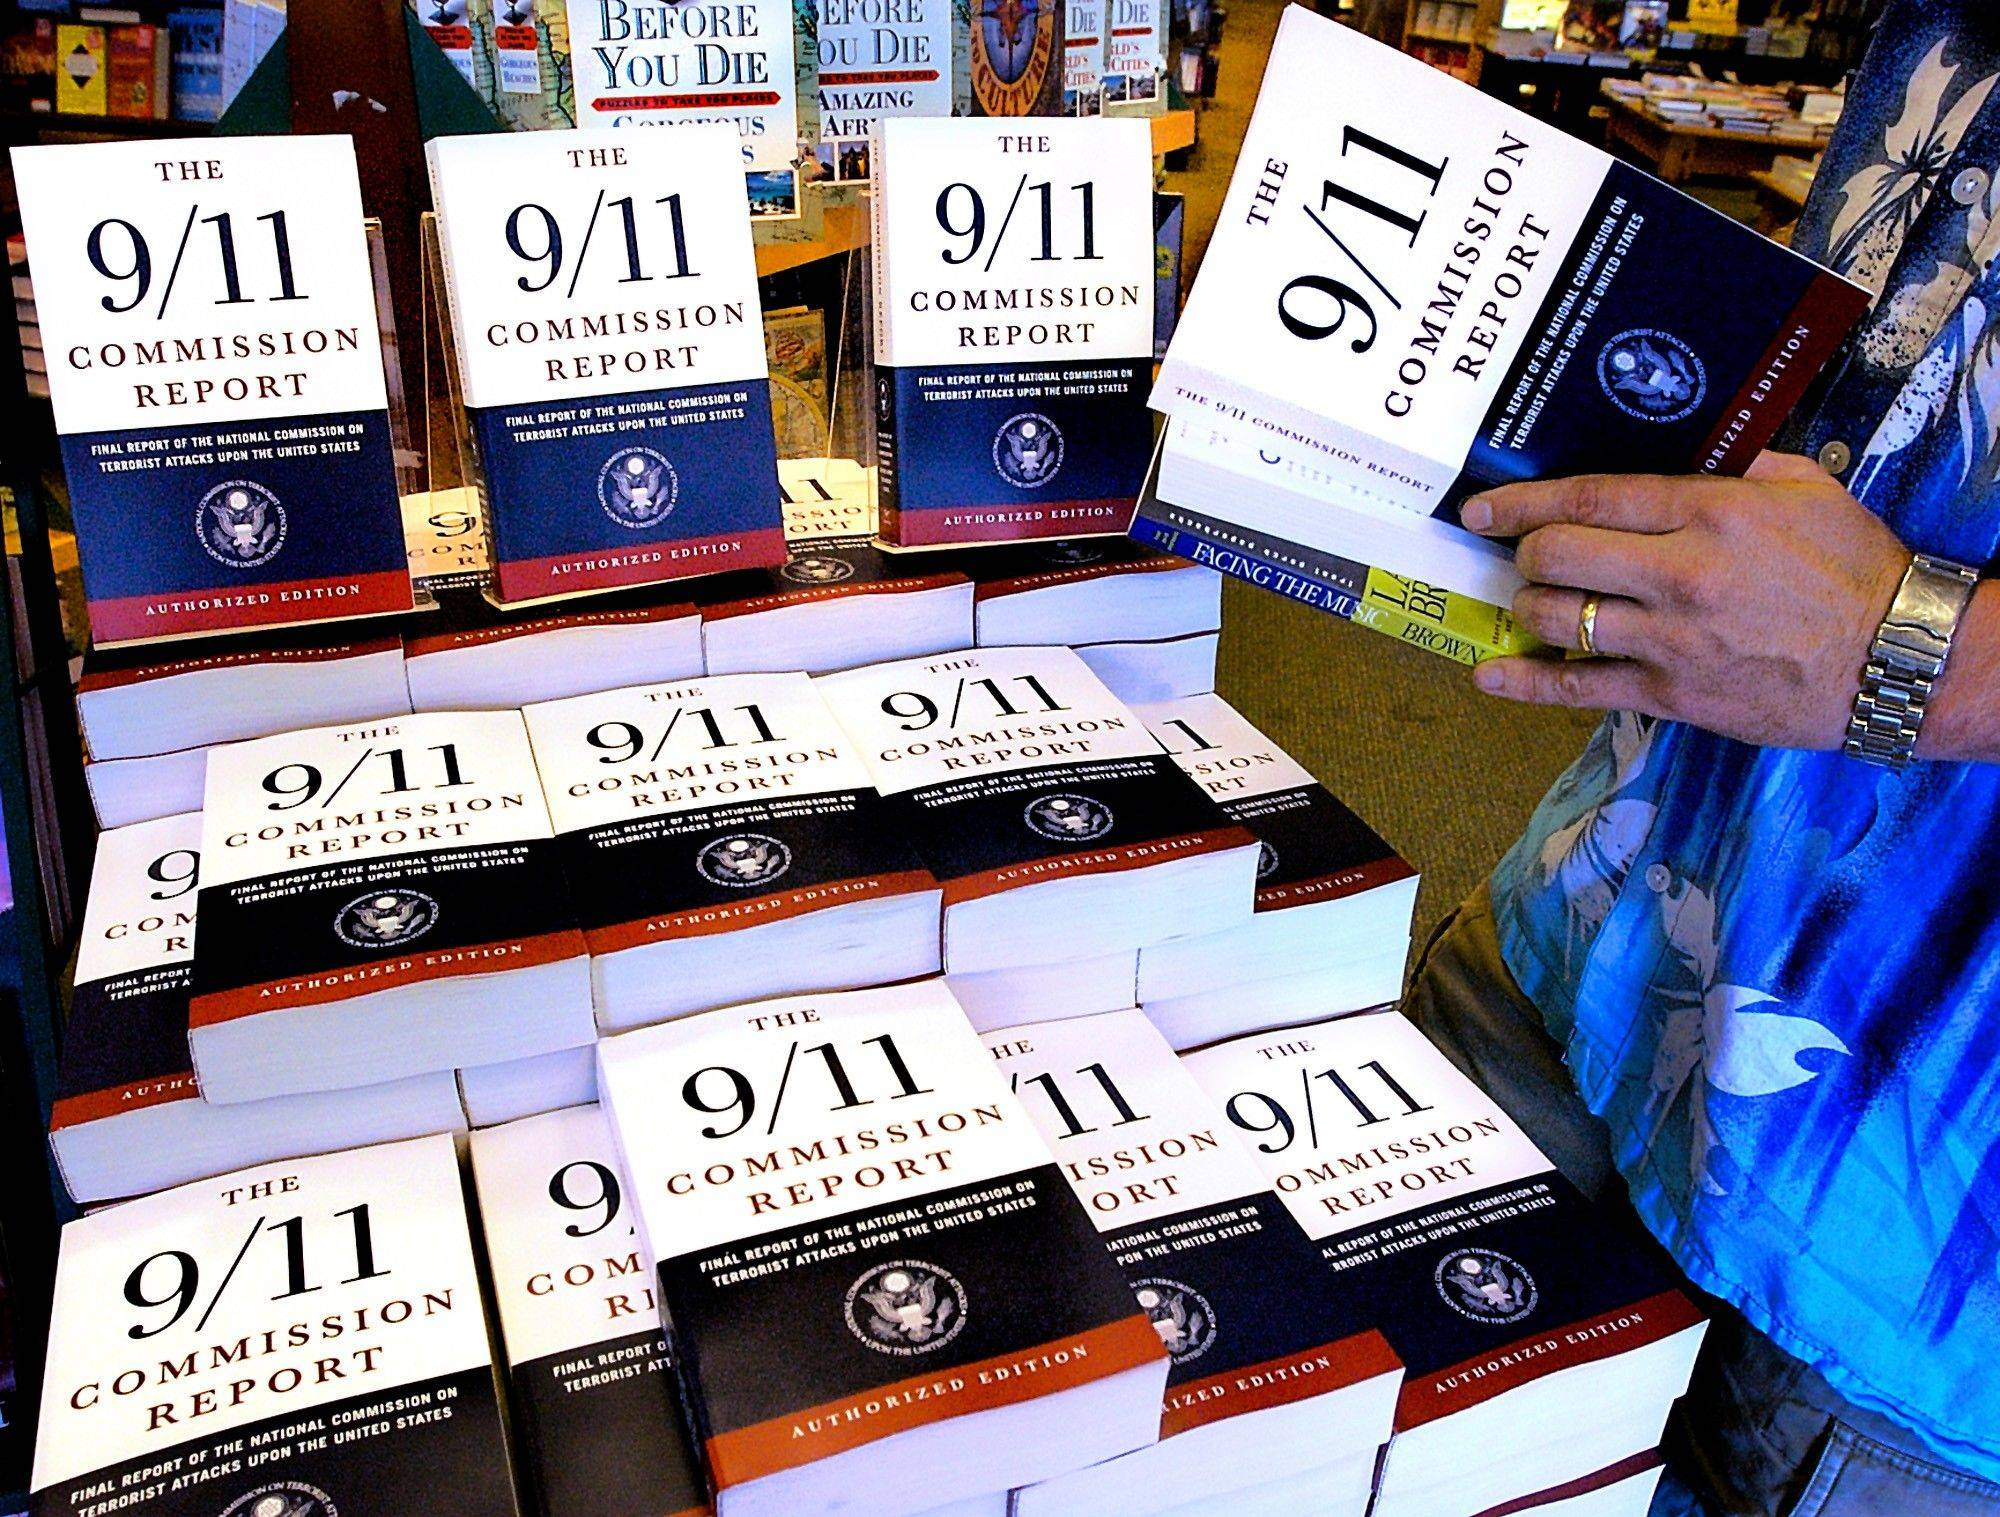 A patron of the Barnes & Noble bookstore in Springfield, Ill., reads a copy of the �The 9/11 Commission Report,� a 585-page road map to create an America that is �safer, stronger, wiser.� Many of the commission�s recommendations are now reality. But in some cases, results haven�t lived up to expectations. And other proposals still are just that, ideas awaiting action.